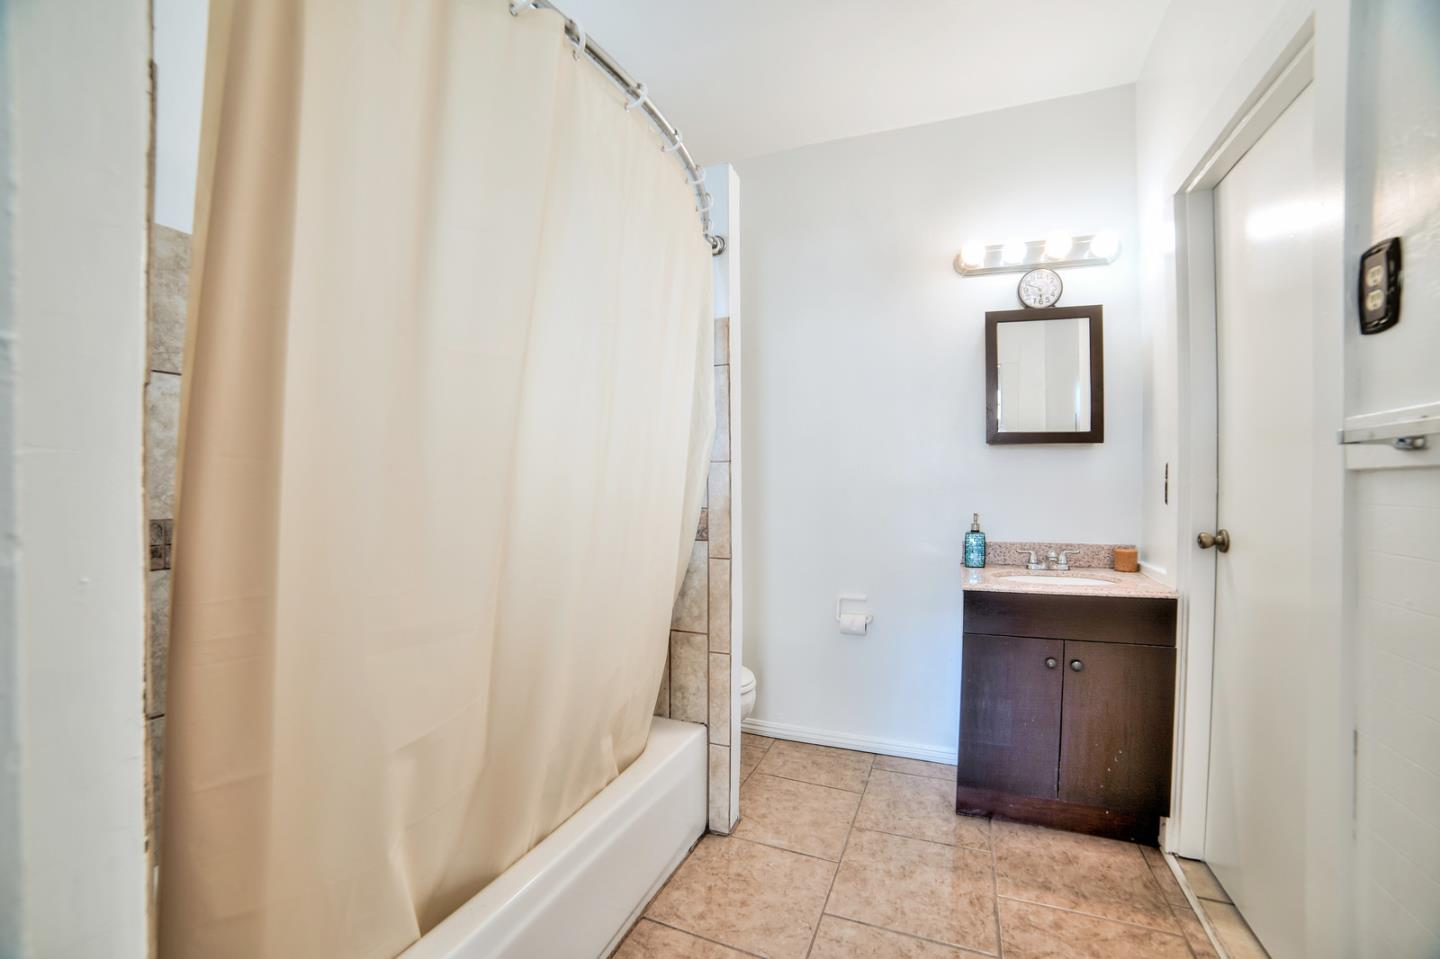 Charming And Cozy 2 Bedroom, 1 Bathroom Detached Single Family Home Located  In South San Francisco. Includes An Attached Bonus Room Perfect As An  Office Or ...